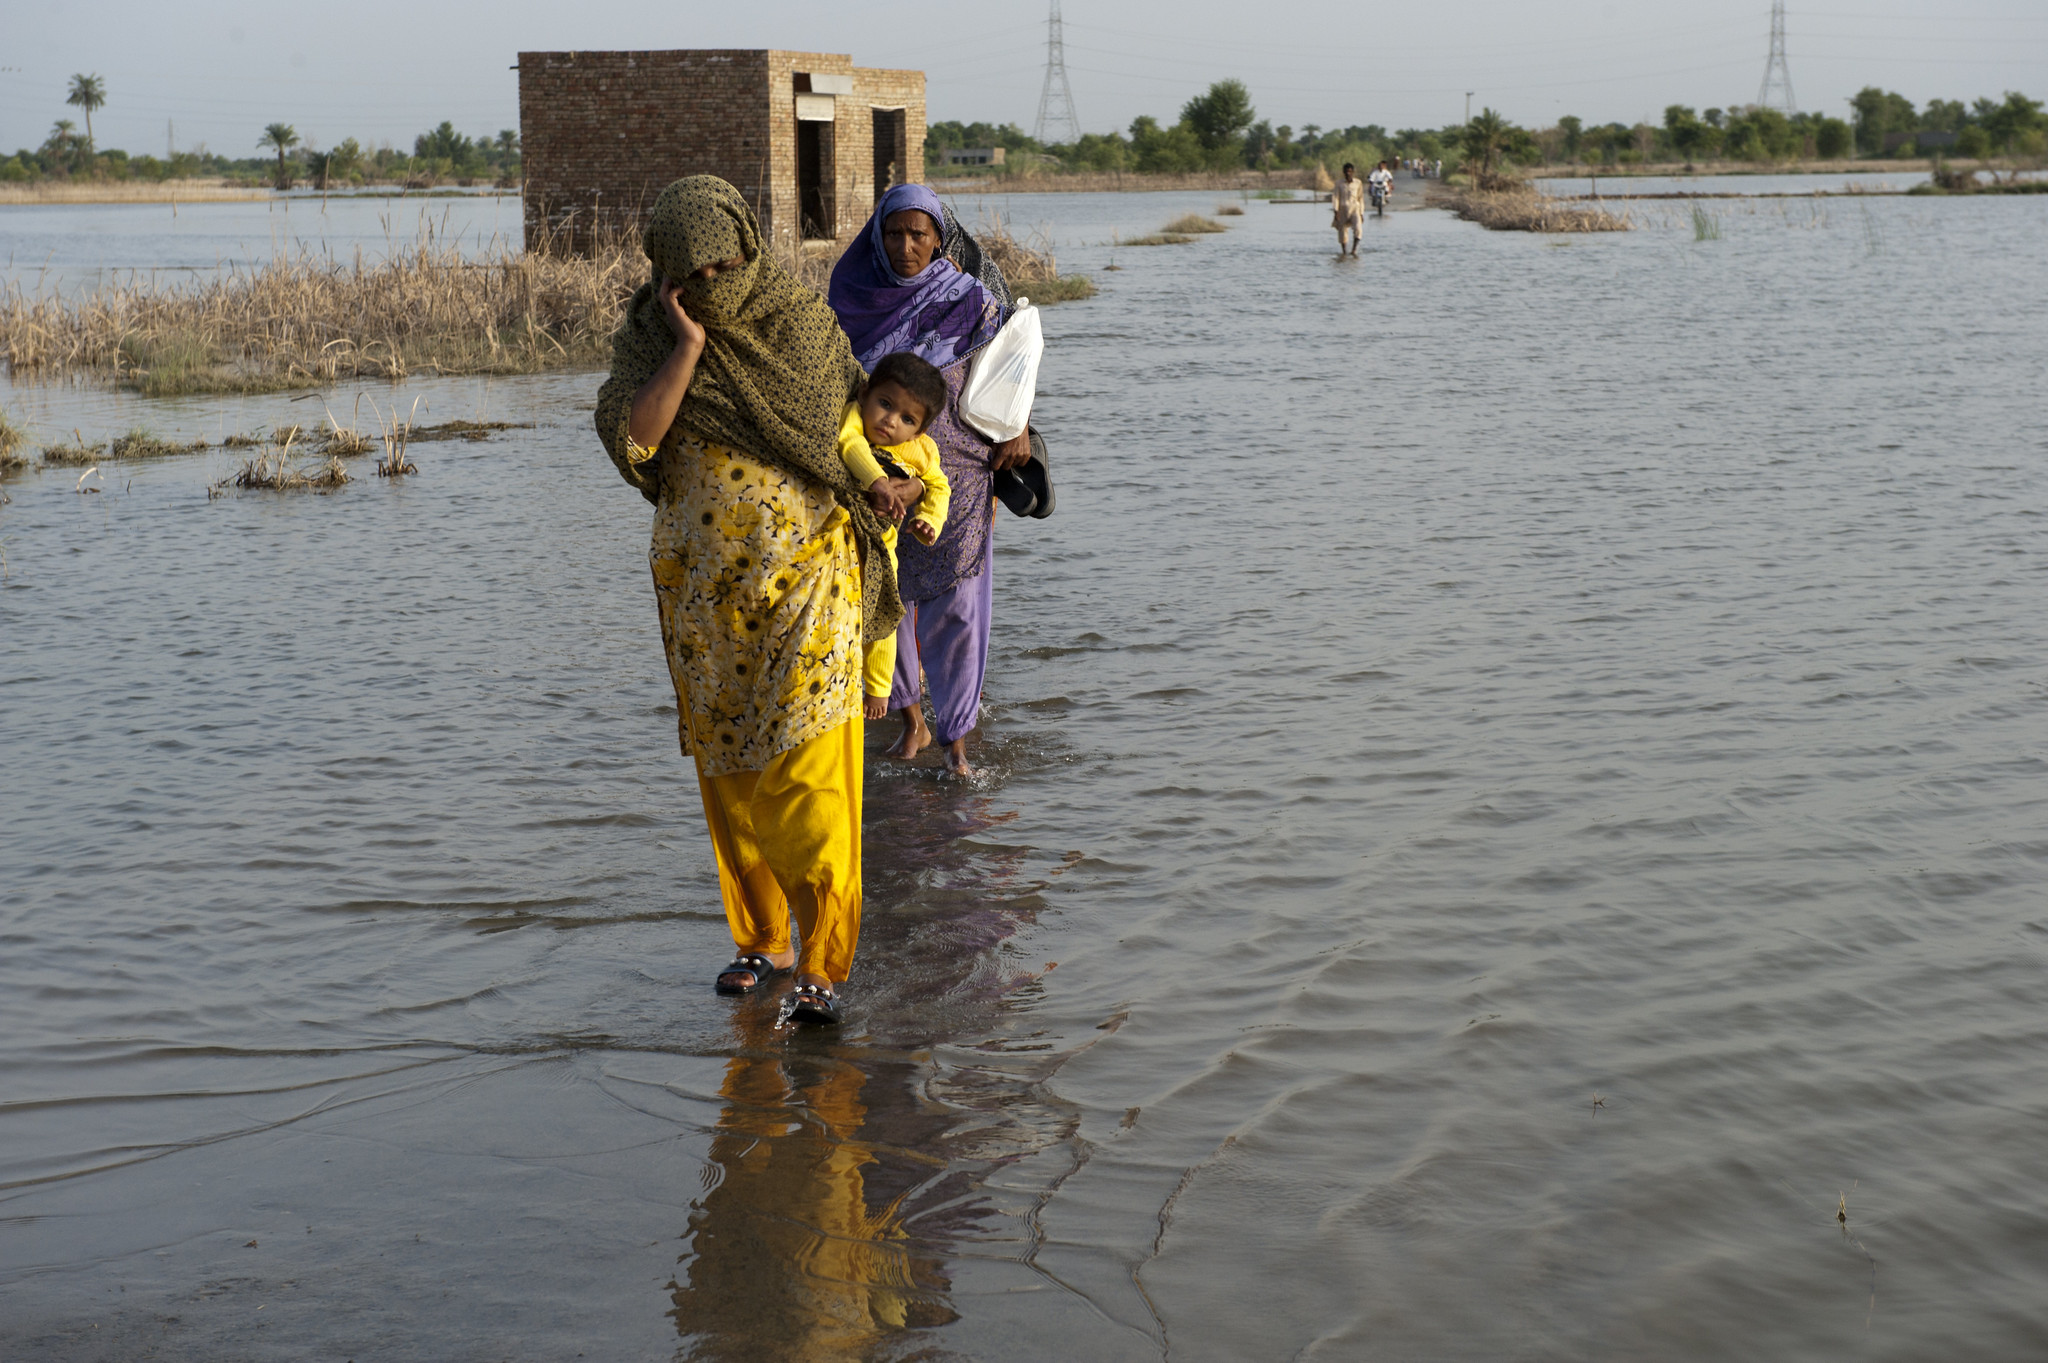 A family in Pakistan walks through flooded streets